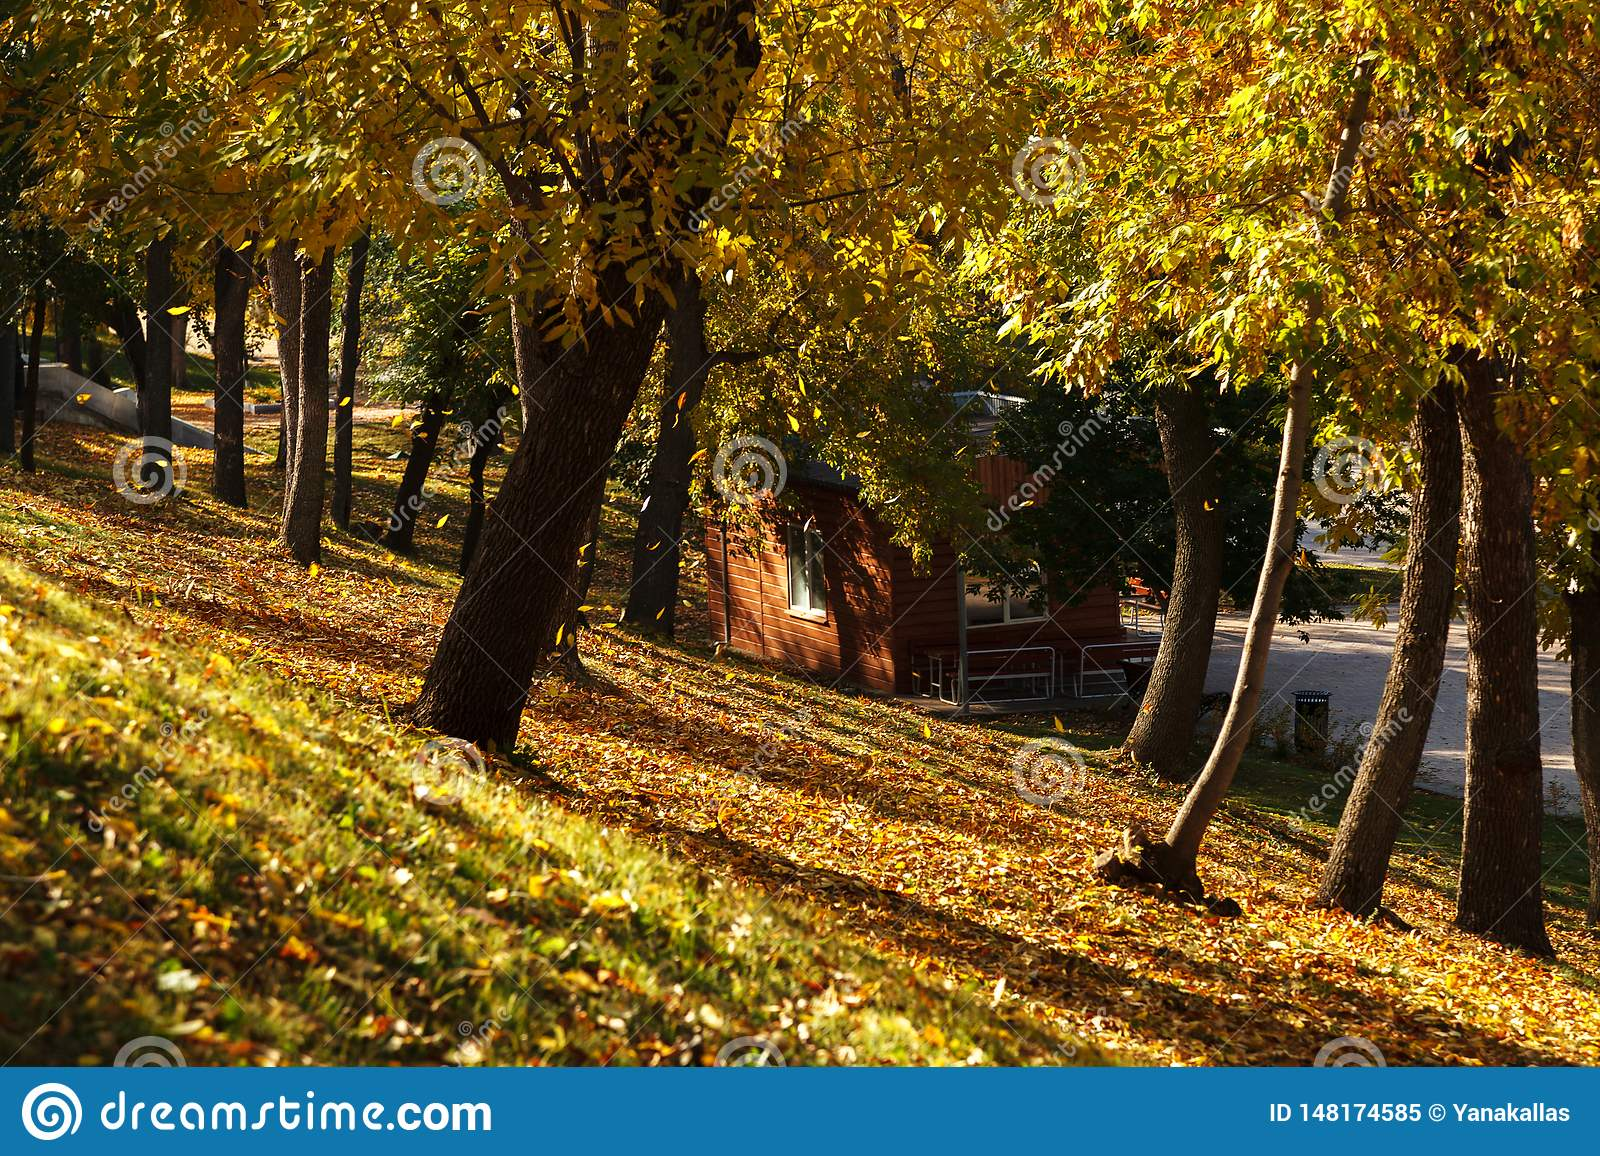 Fall Autumn Landscape With Trees Full Of Colorful Falling Leaves